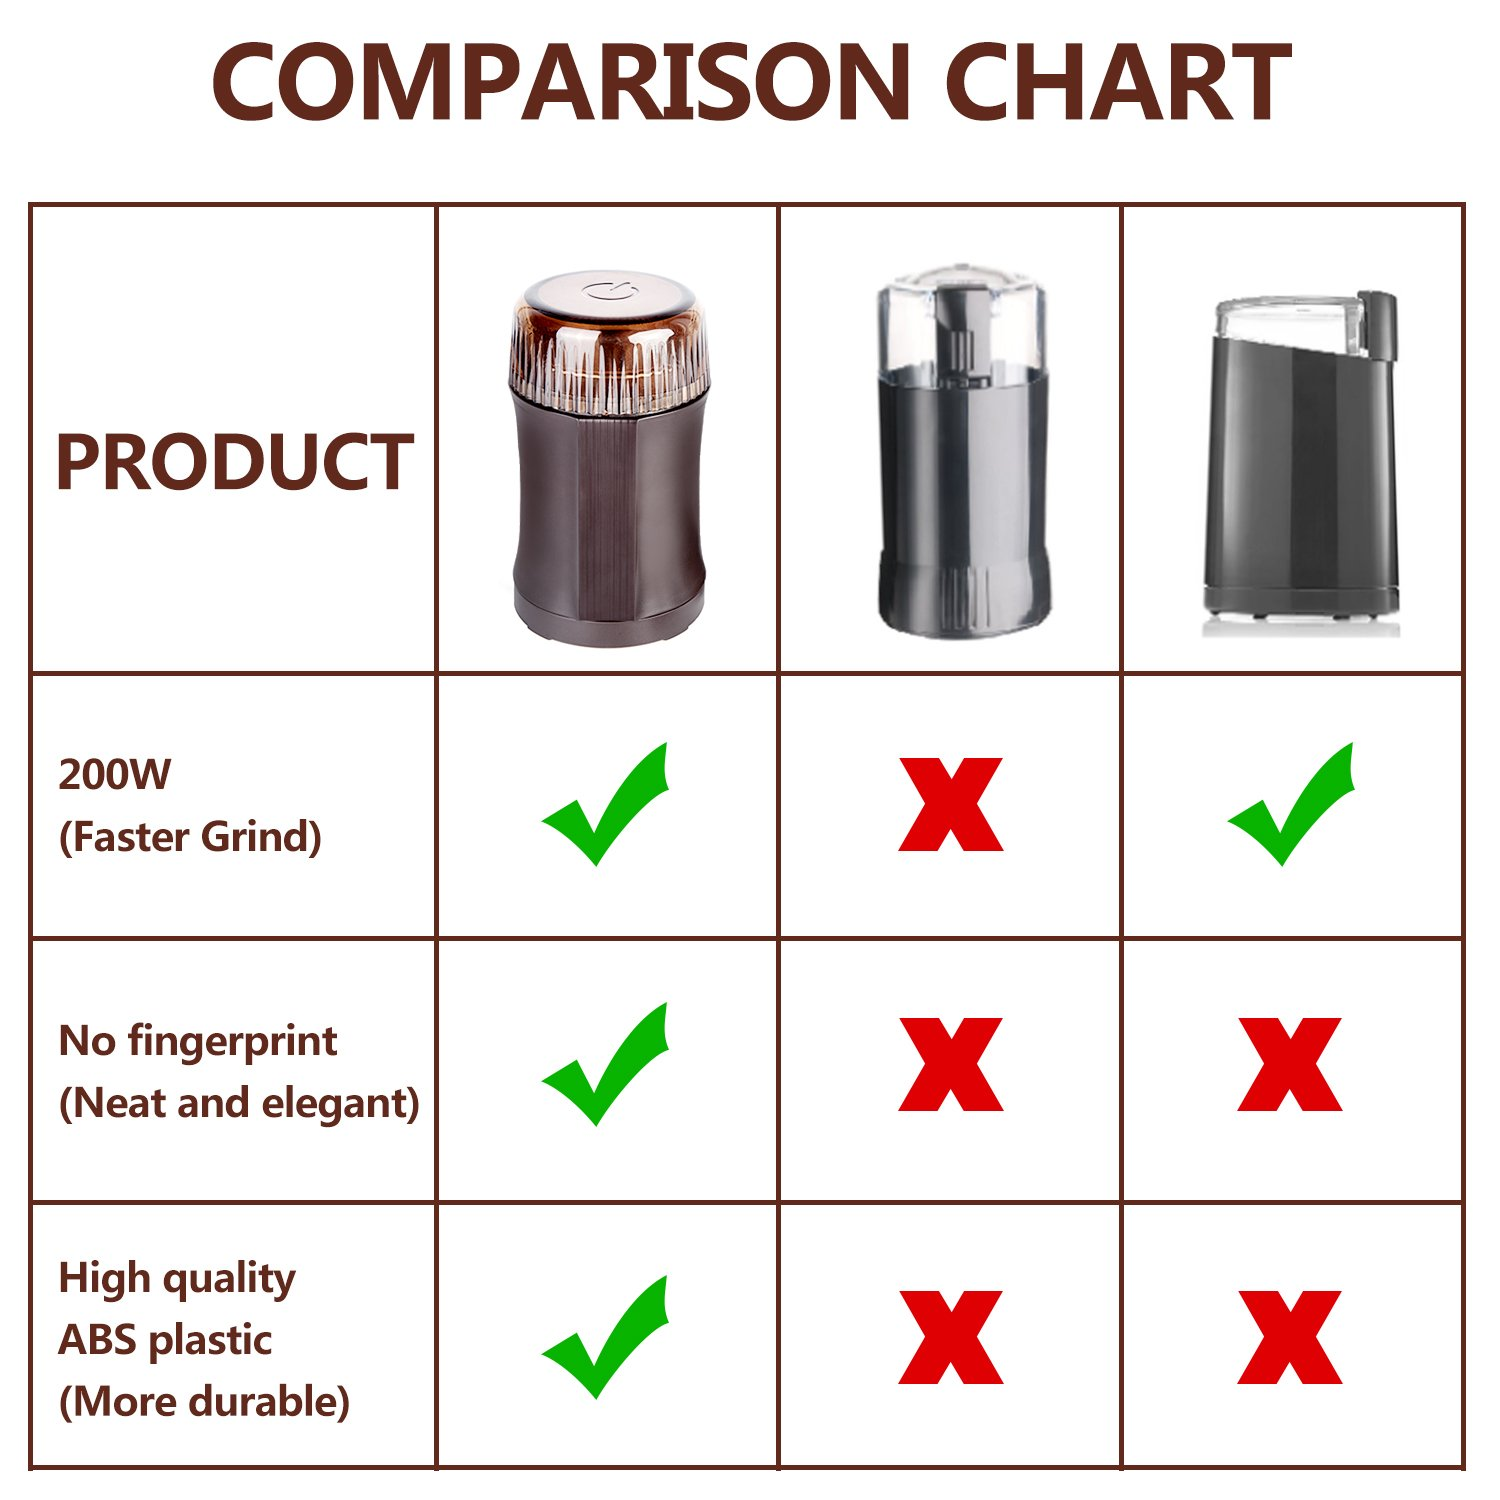 AMOVEE Electric Coffee Grinder with Stainless Steel Blades for Coffee Beans, Spice, Nuts, Herbs, Pepper and Grains, Brown, 200W, Cleaning Brush Included by AmoVee (Image #6)